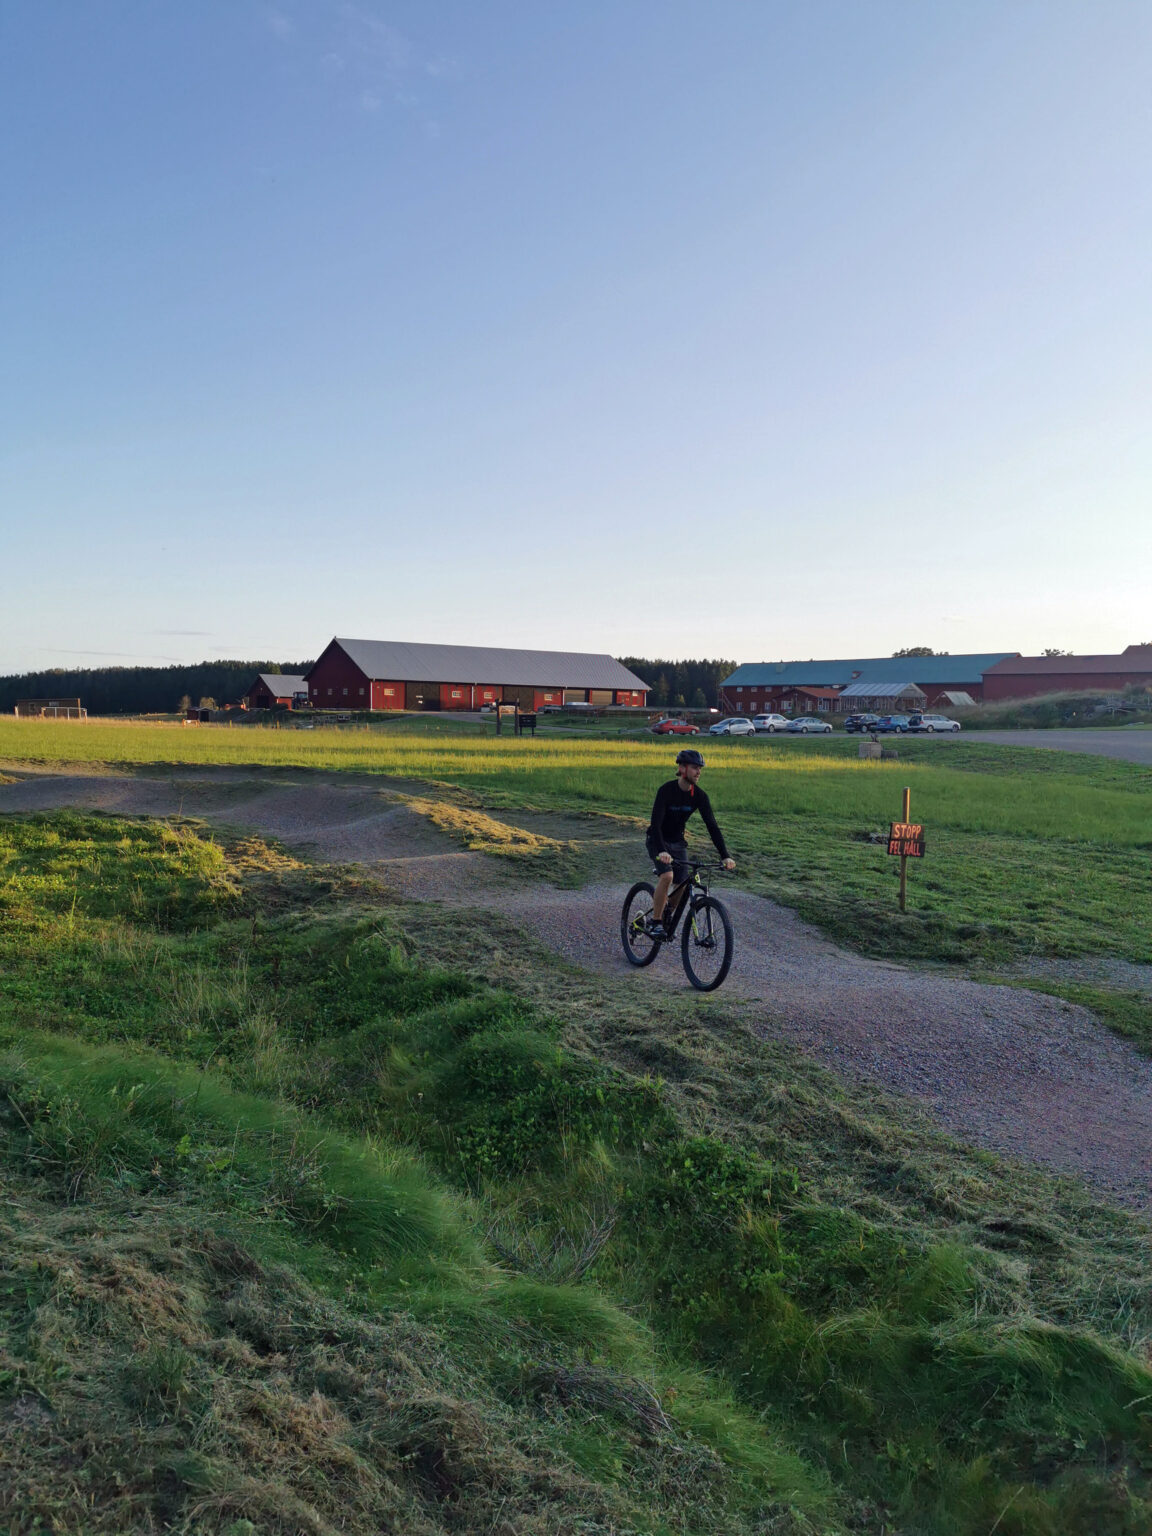 Man biking at a pumptrack with green fields and red barns in the background.